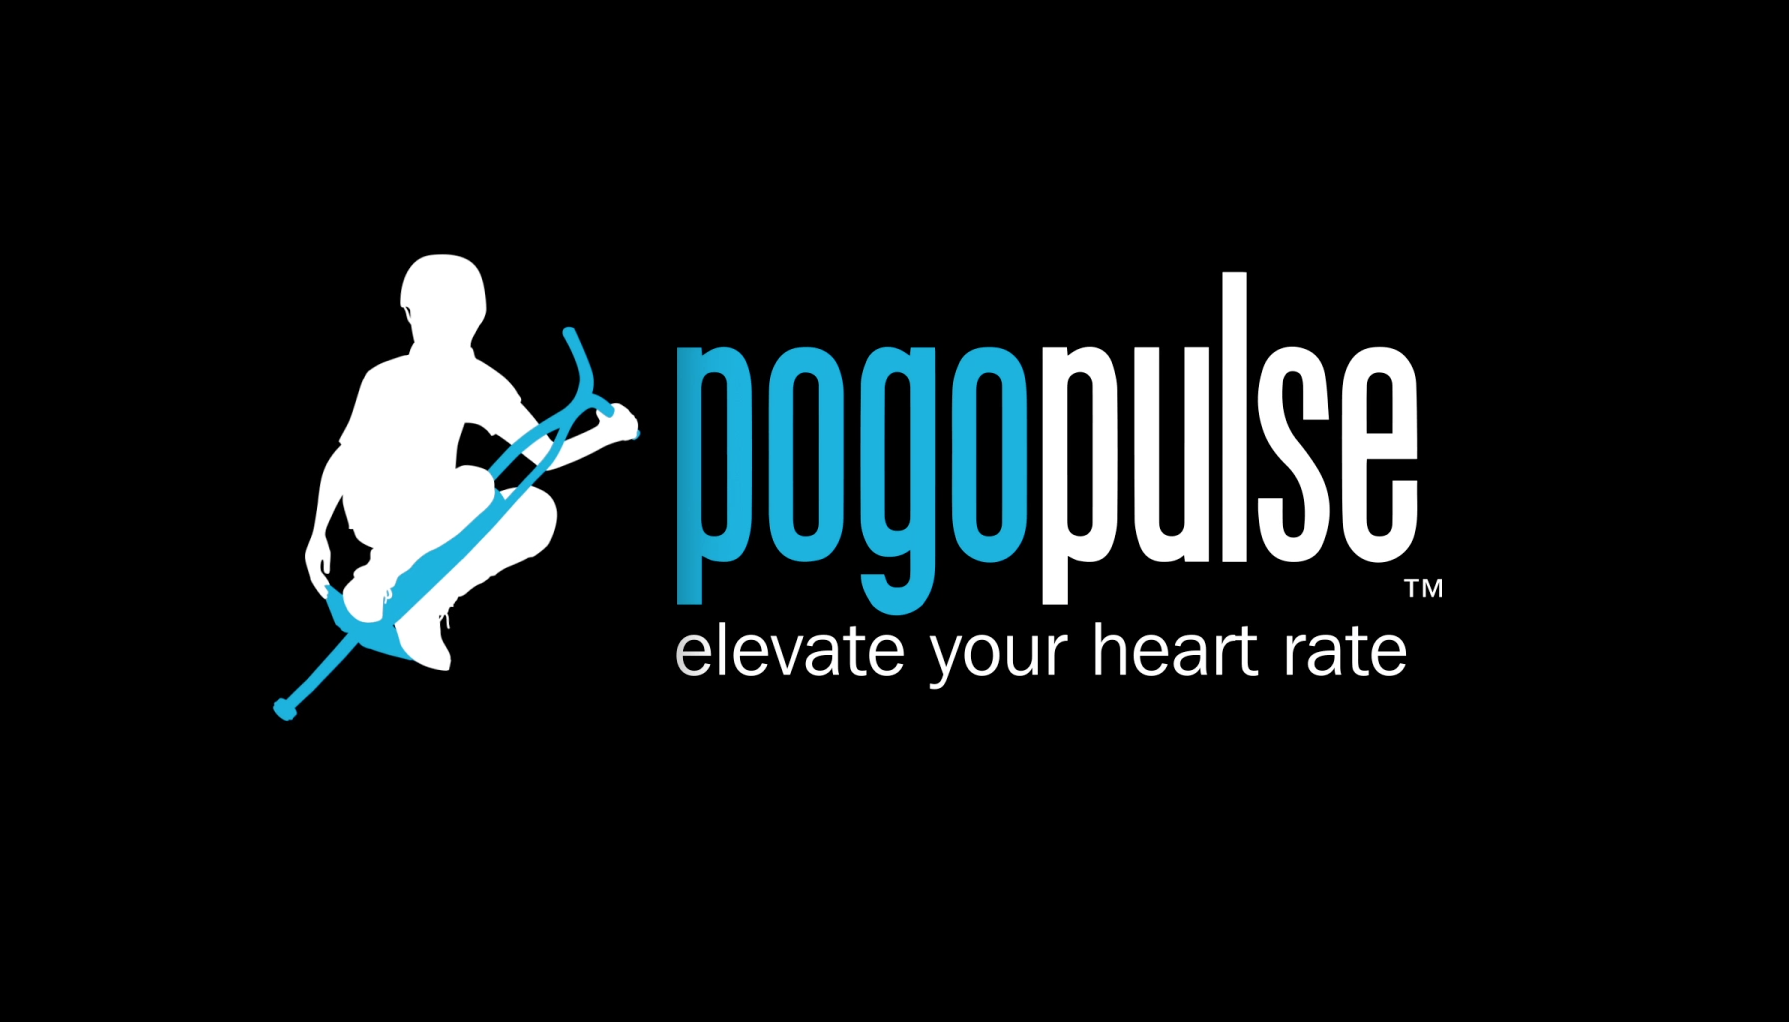 Pogo Pulse Logo